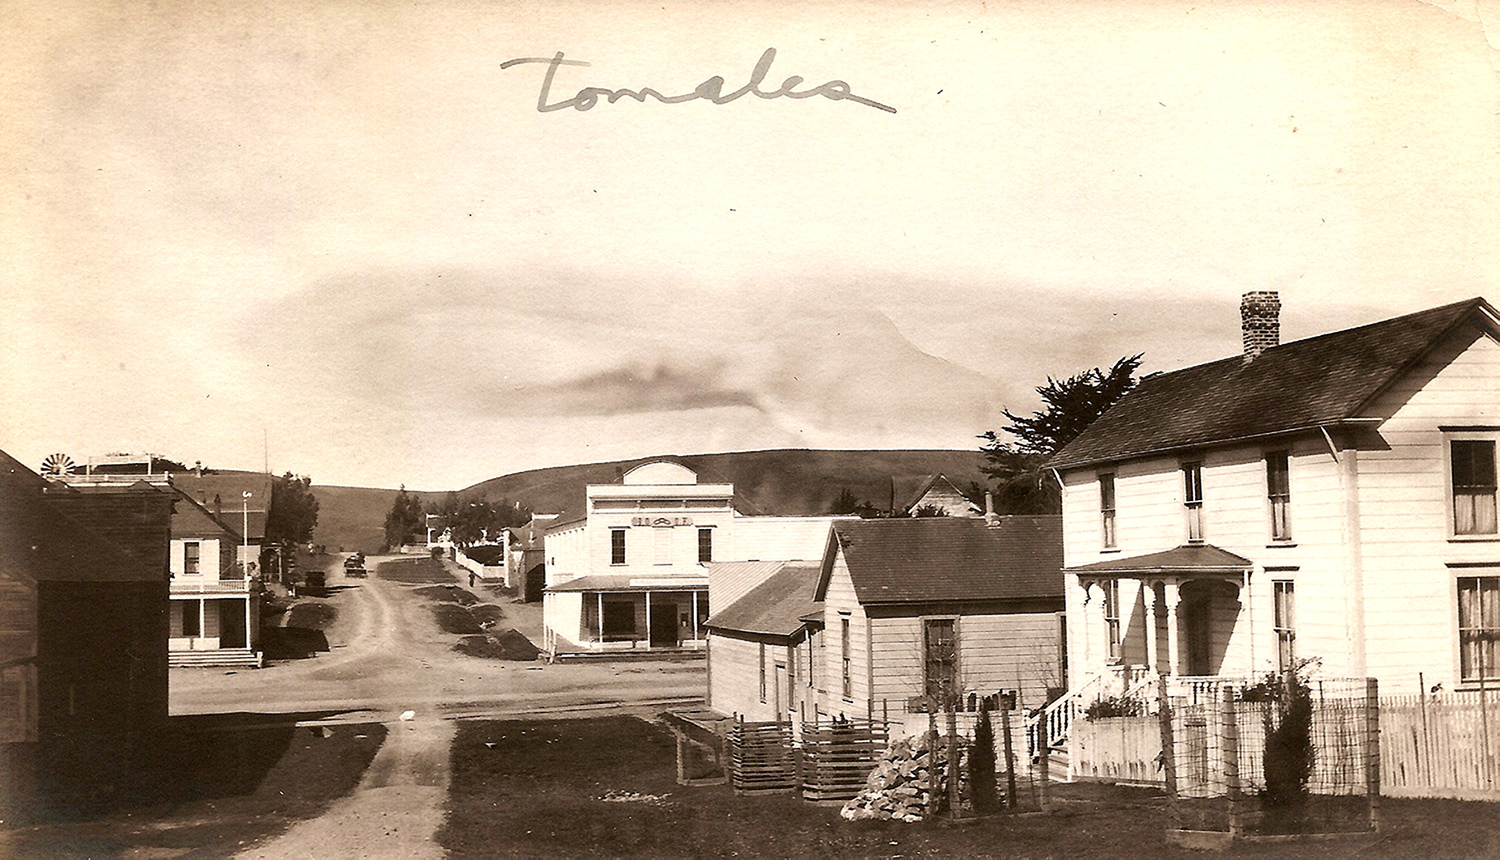 A view west from First Street across Highway One, Upper Town Tomales's main intersection, a few years before a large fire destroyed sixteen buildings, including the hotel on the corner, one just visible behind it, and the livery stable in shadow, all at left. Photo by Ella Jorgensen circa 1916.